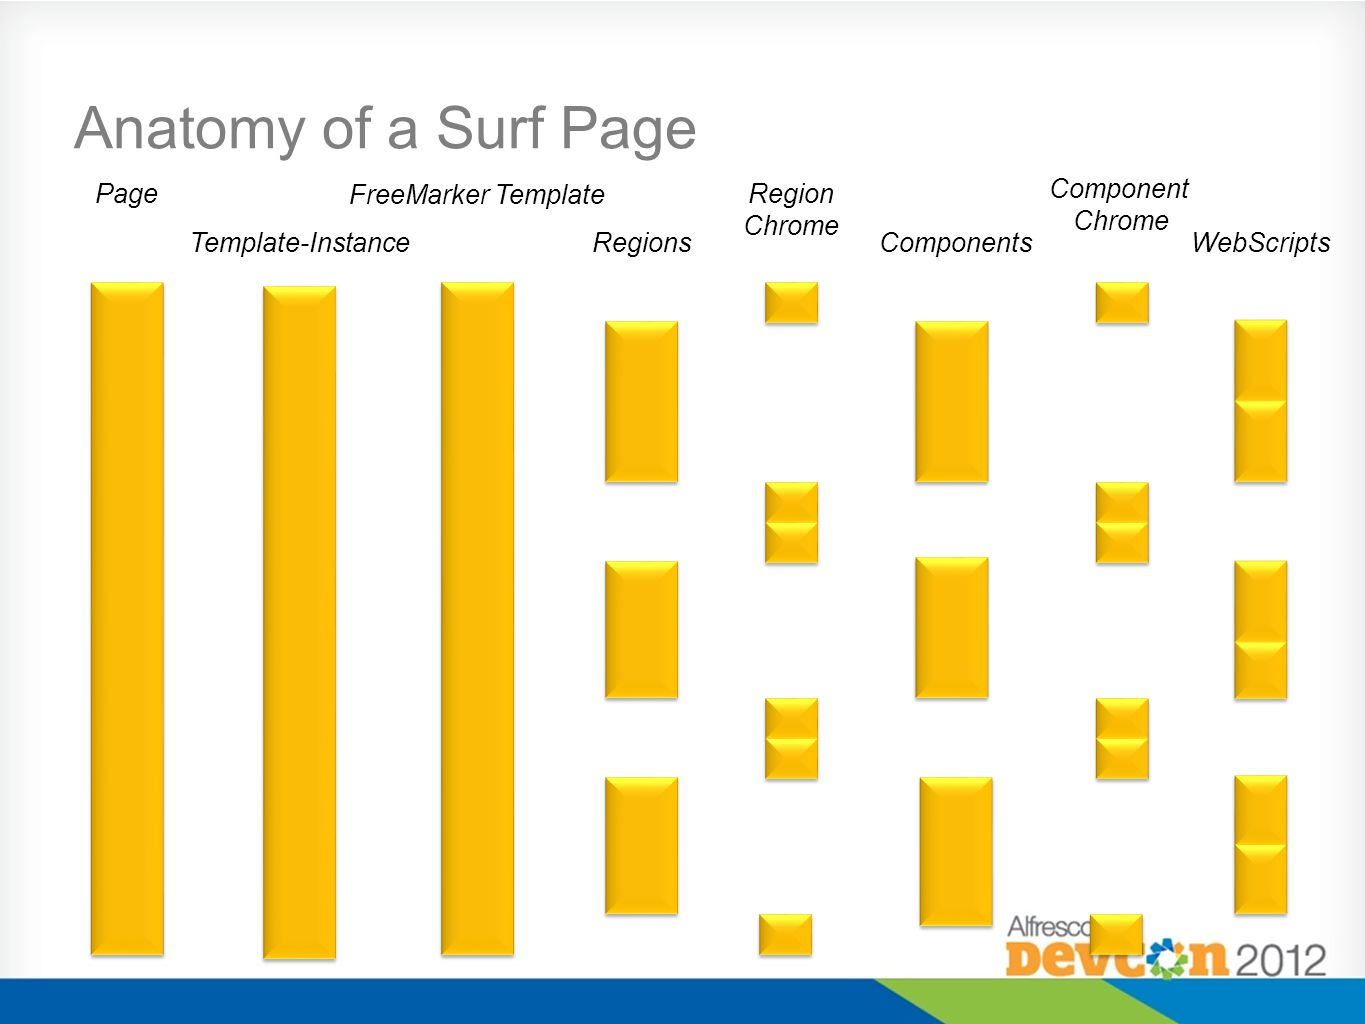 Region Chrome Anatomy of a Surf Page Page Template-Instance FreeMarker Template RegionsComponents Component Chrome WebScripts